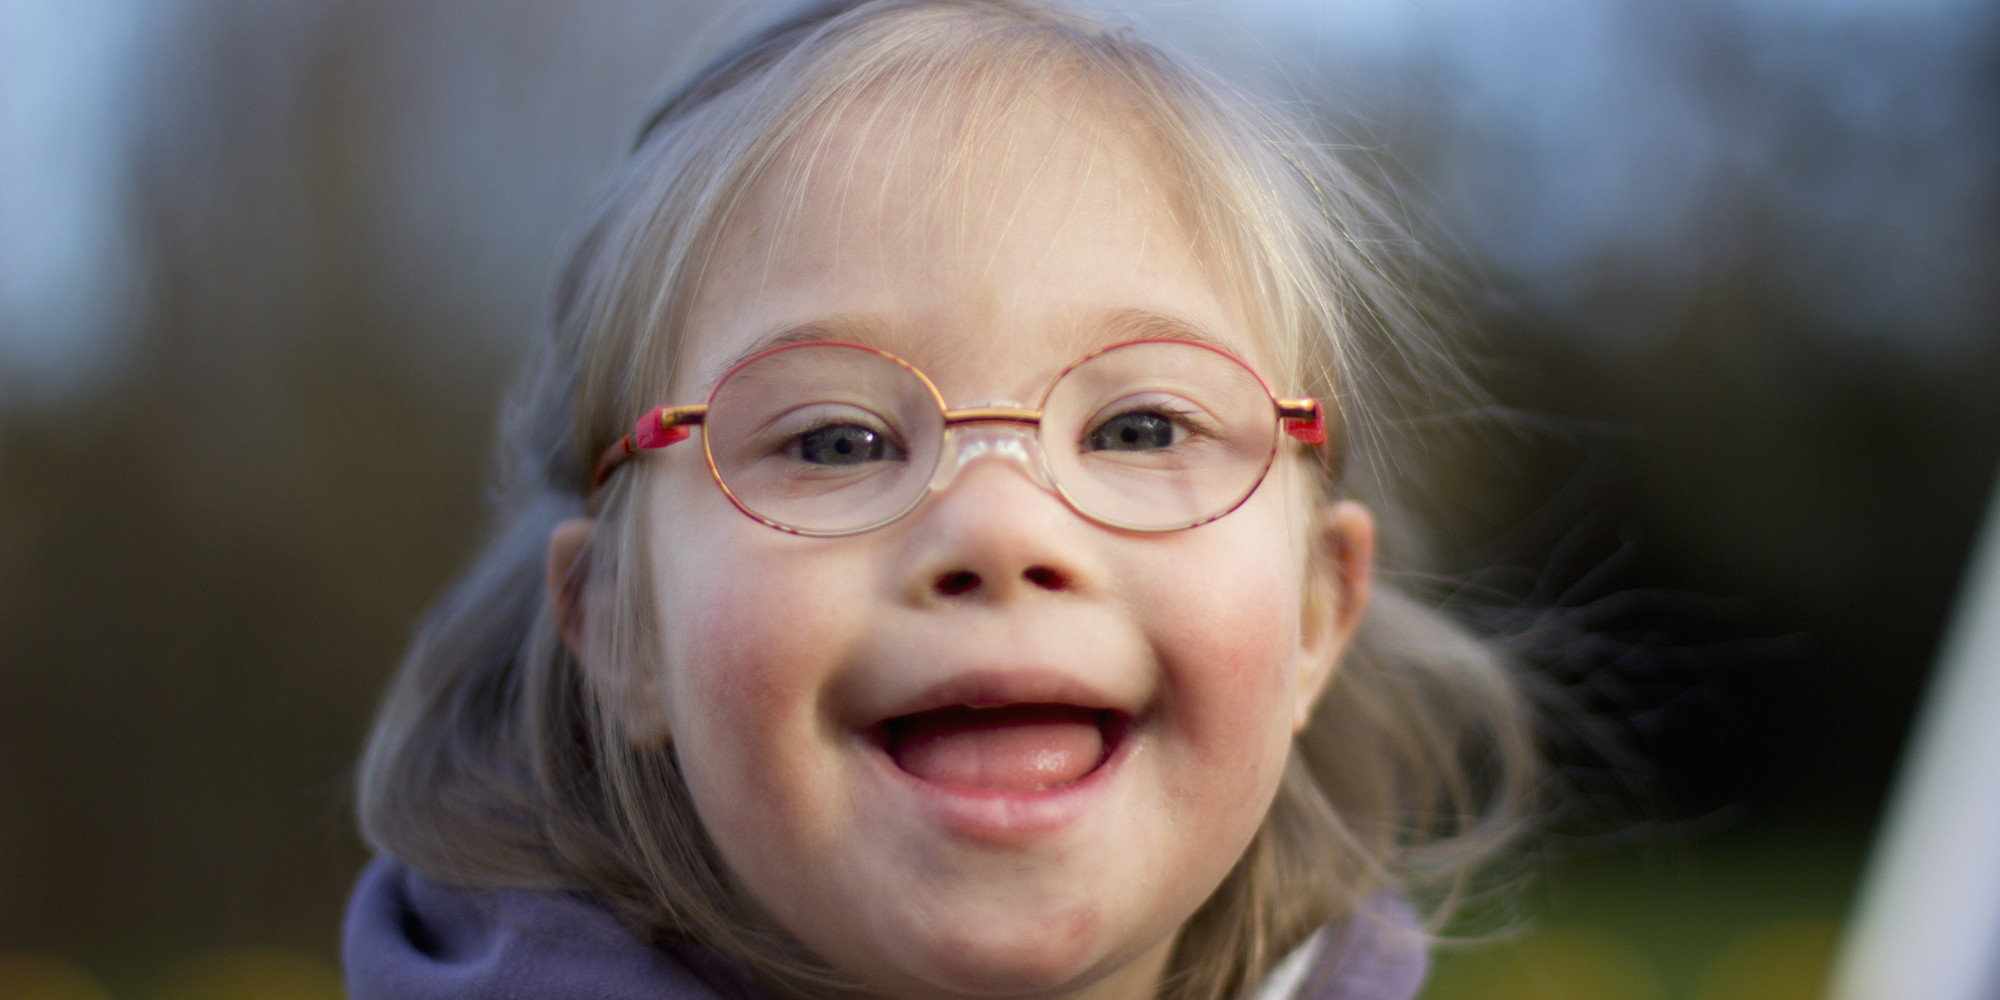 For Adults with downs syndrome will